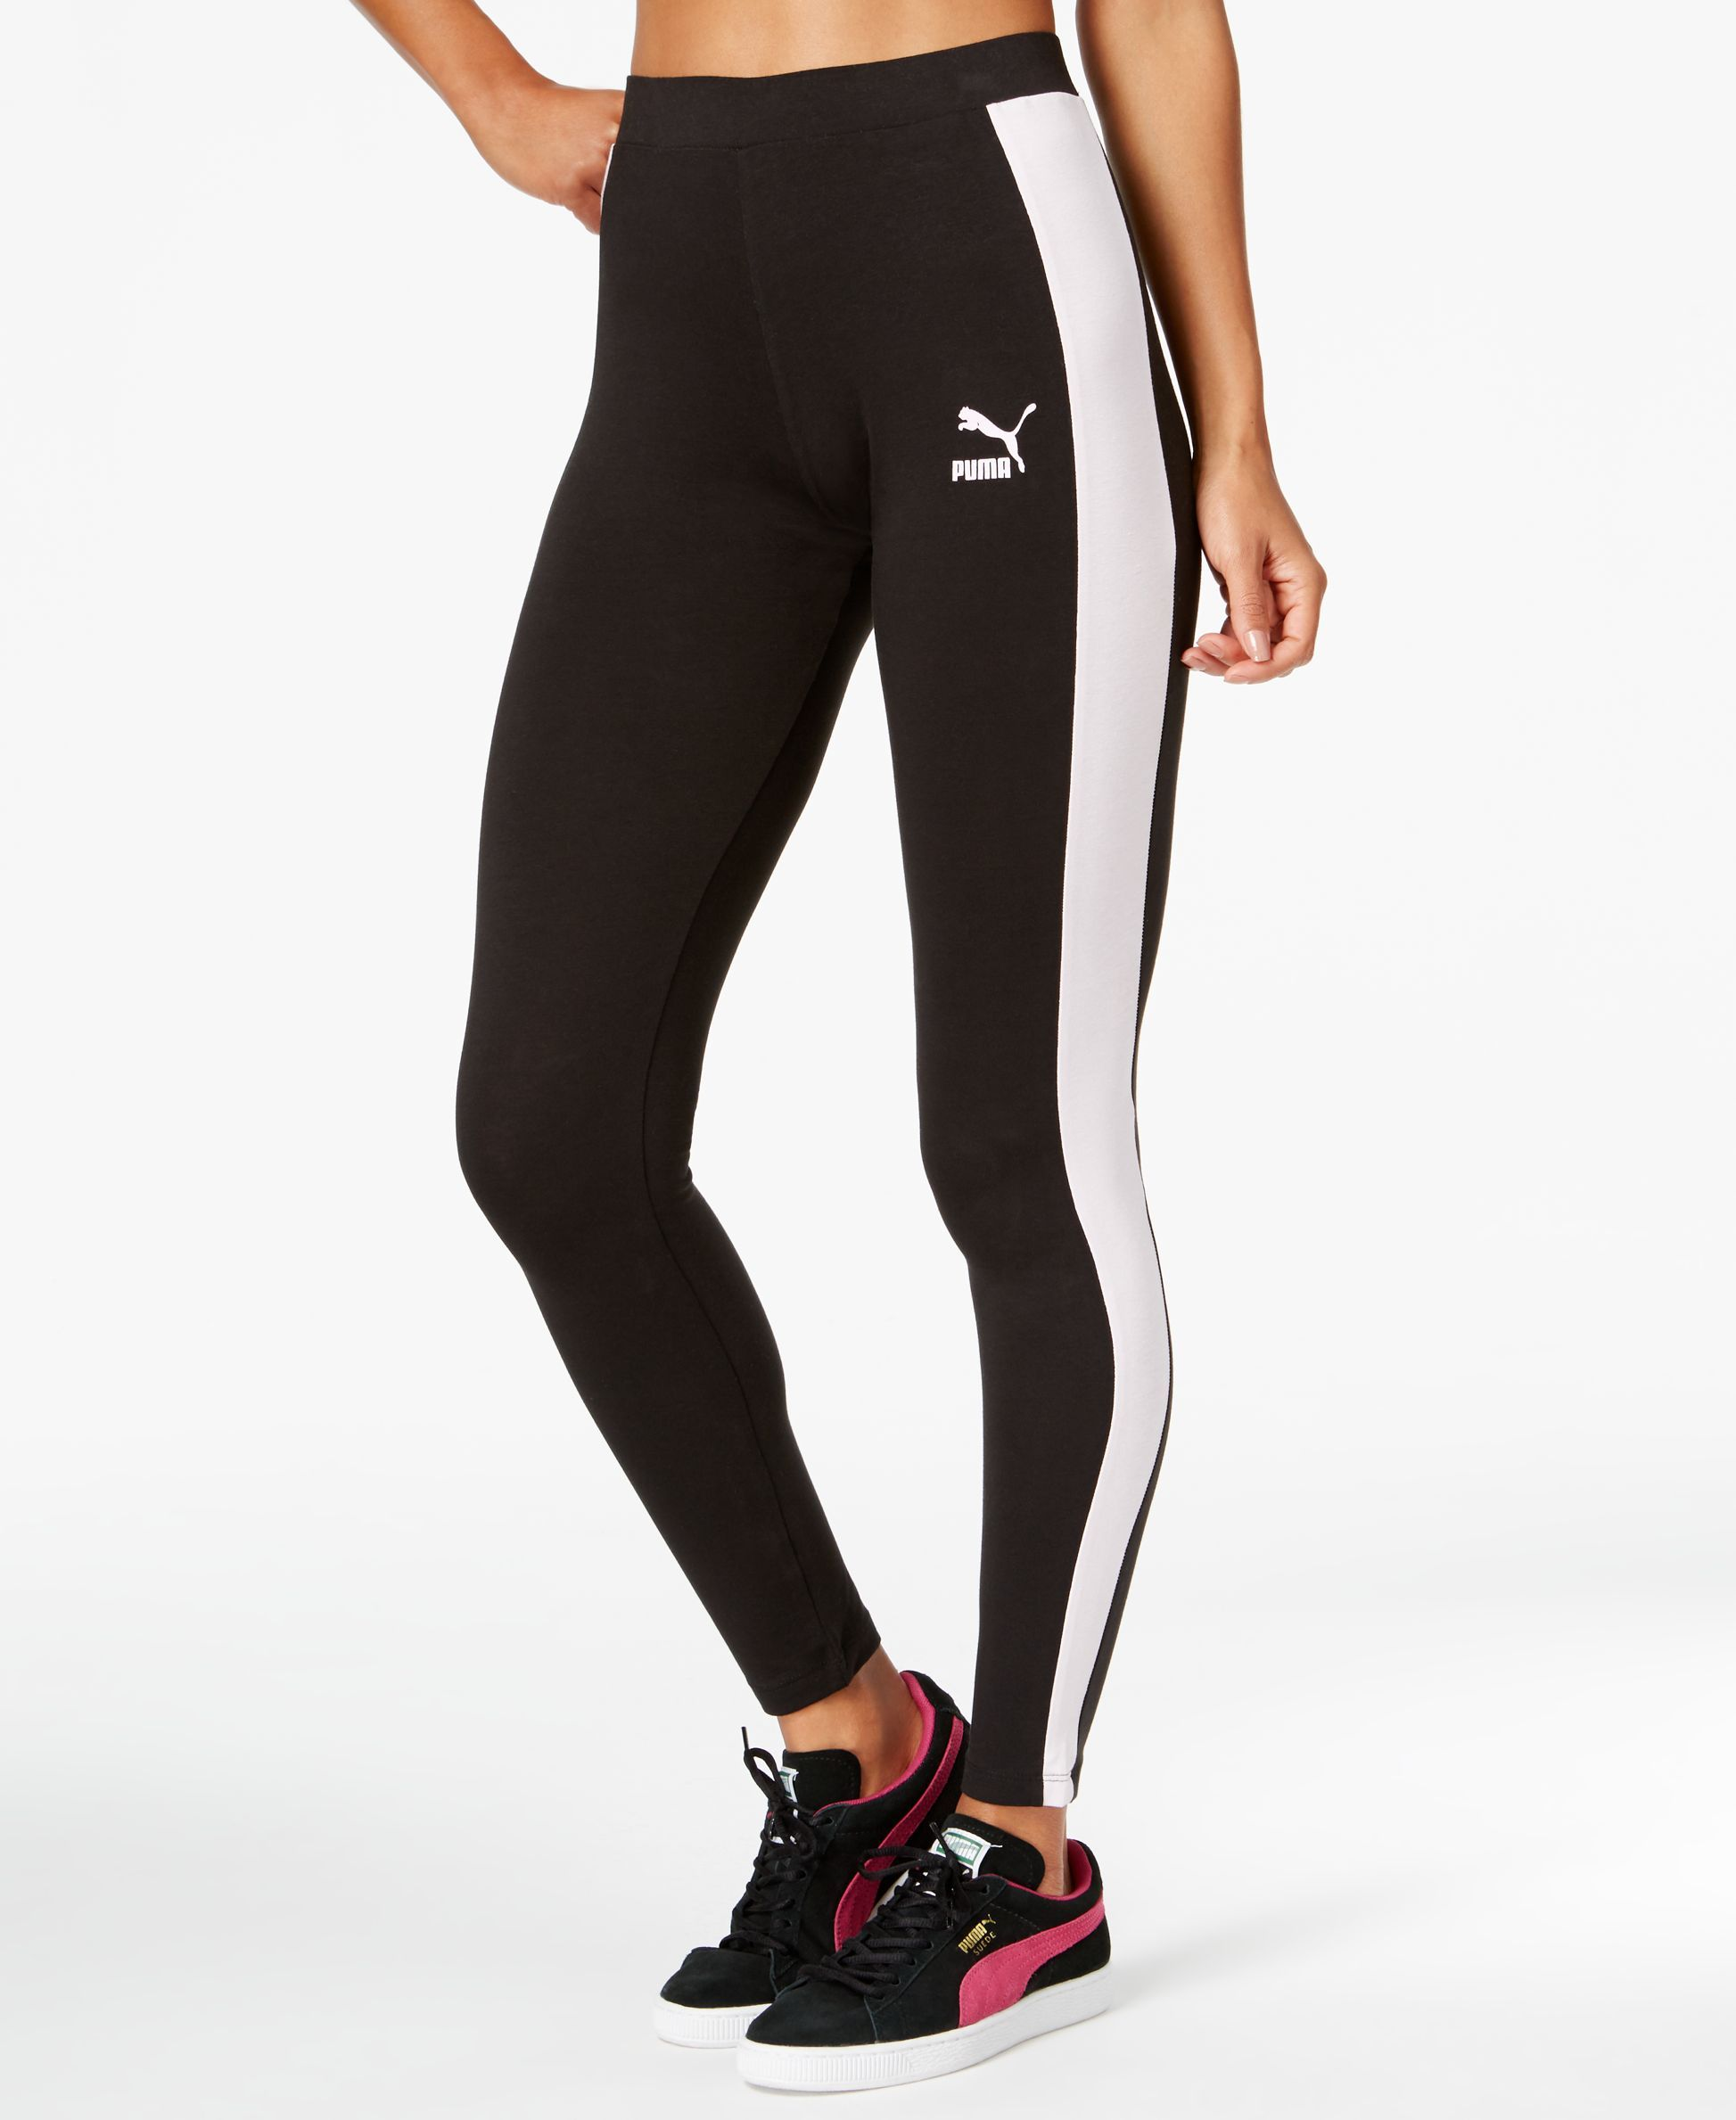 Women's Clothing Puma Ladies Gym Running Tights Bnwot Small S Traveling